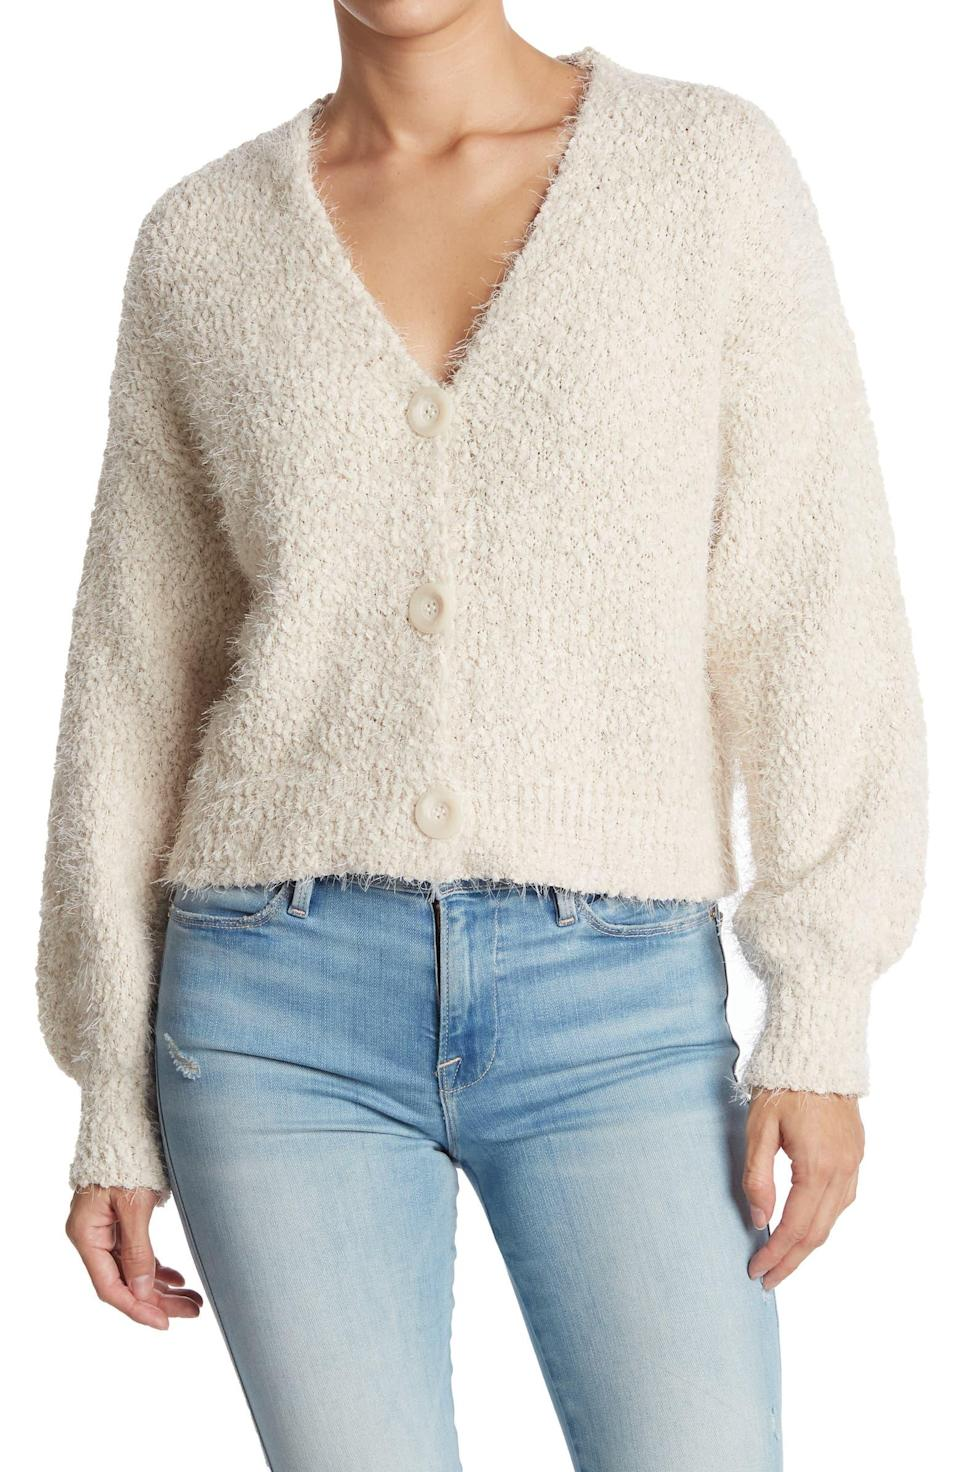 """<br><br><strong>Laundry by Shelli Segal</strong> Eyelash Knit Cardigan, $, available at <a href=""""https://go.skimresources.com/?id=30283X879131&url=https%3A%2F%2Fwww.nordstromrack.com%2Fs%2Flaundry-by-shelli-segal-eyelash-knit-cardigan%2F6266648"""" rel=""""nofollow noopener"""" target=""""_blank"""" data-ylk=""""slk:Nordstrom Rack"""" class=""""link rapid-noclick-resp"""">Nordstrom Rack</a>"""